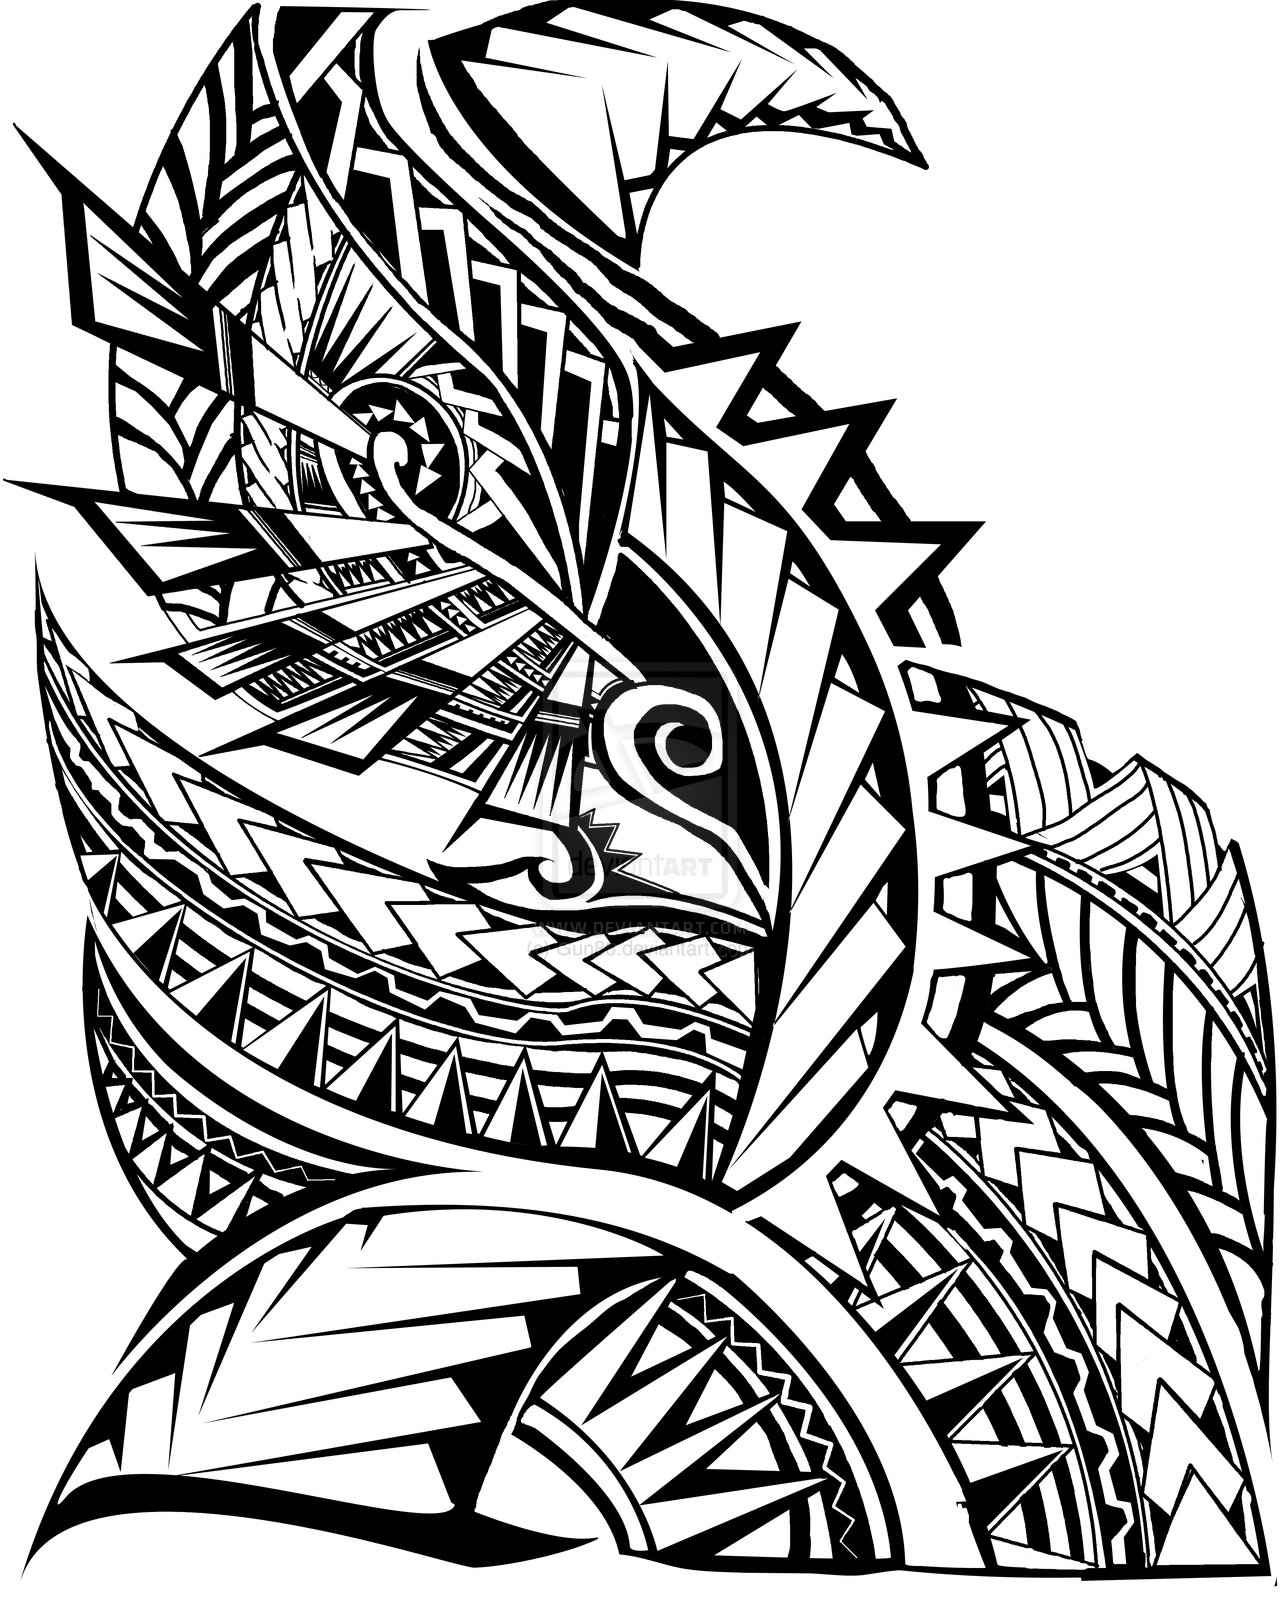 Tattoo Drawing Designs On Paper At GetDrawings.com